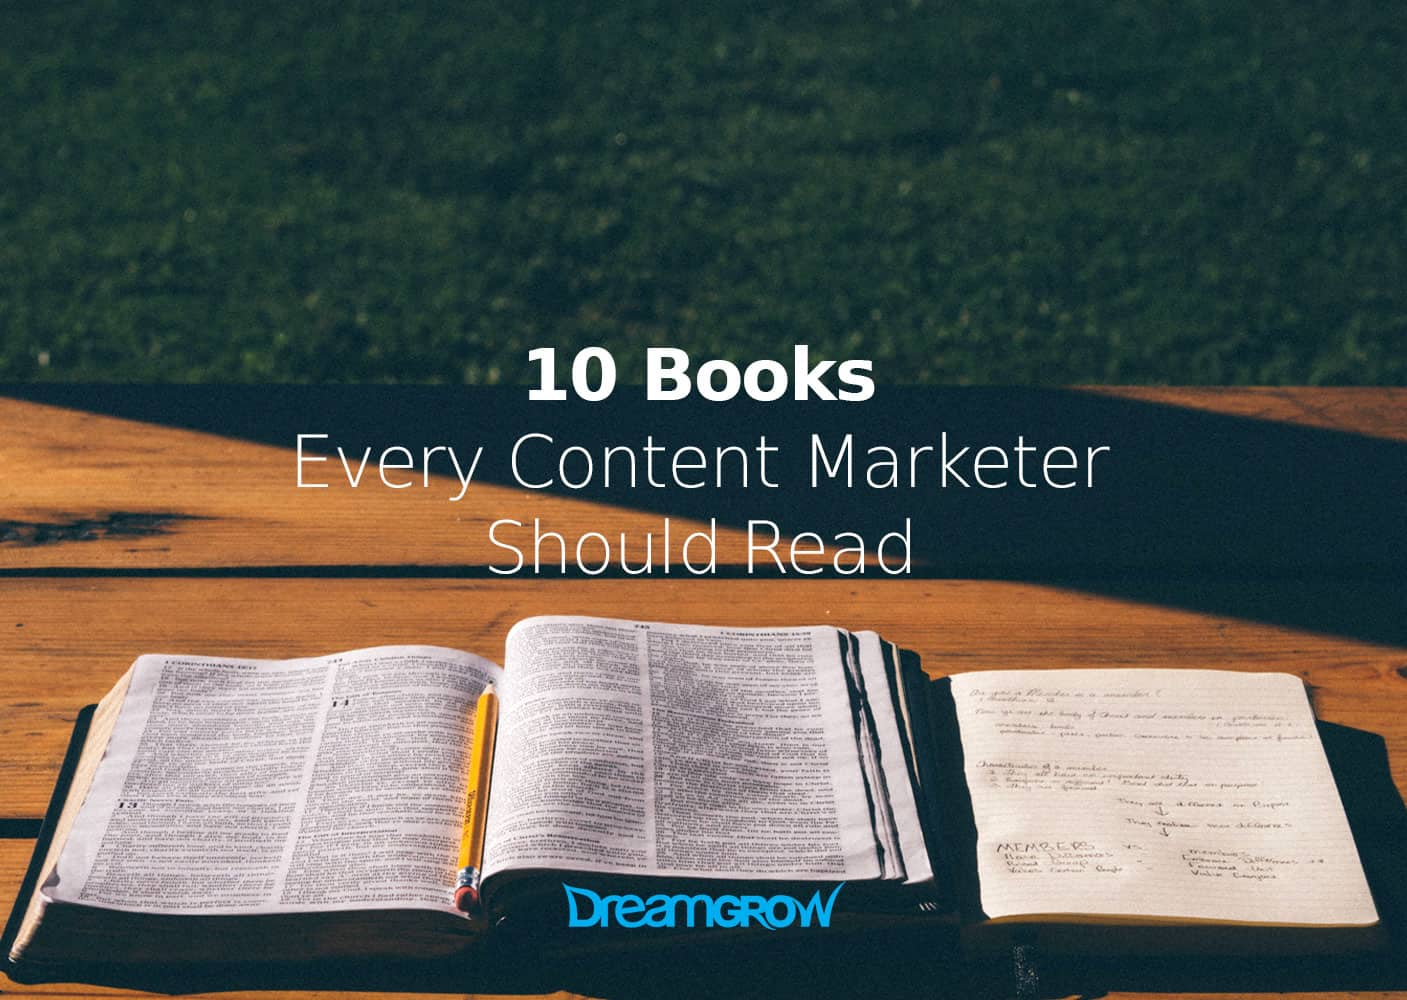 10-books-content-marketer